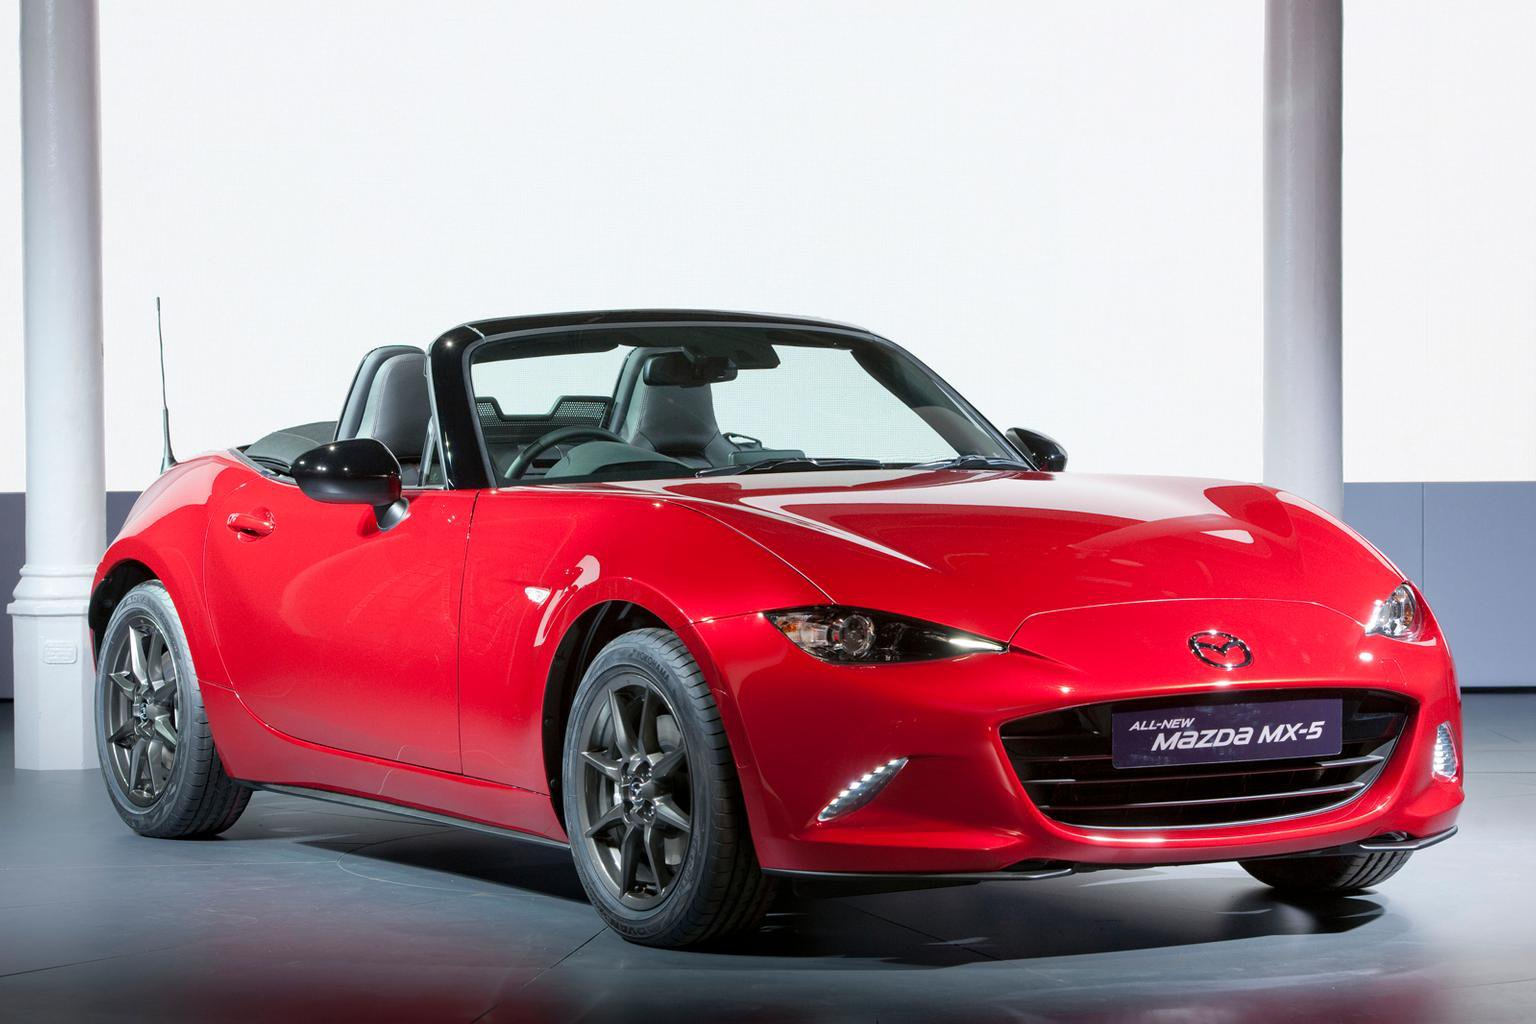 New Mazda MX-5 revealed - all you need to know